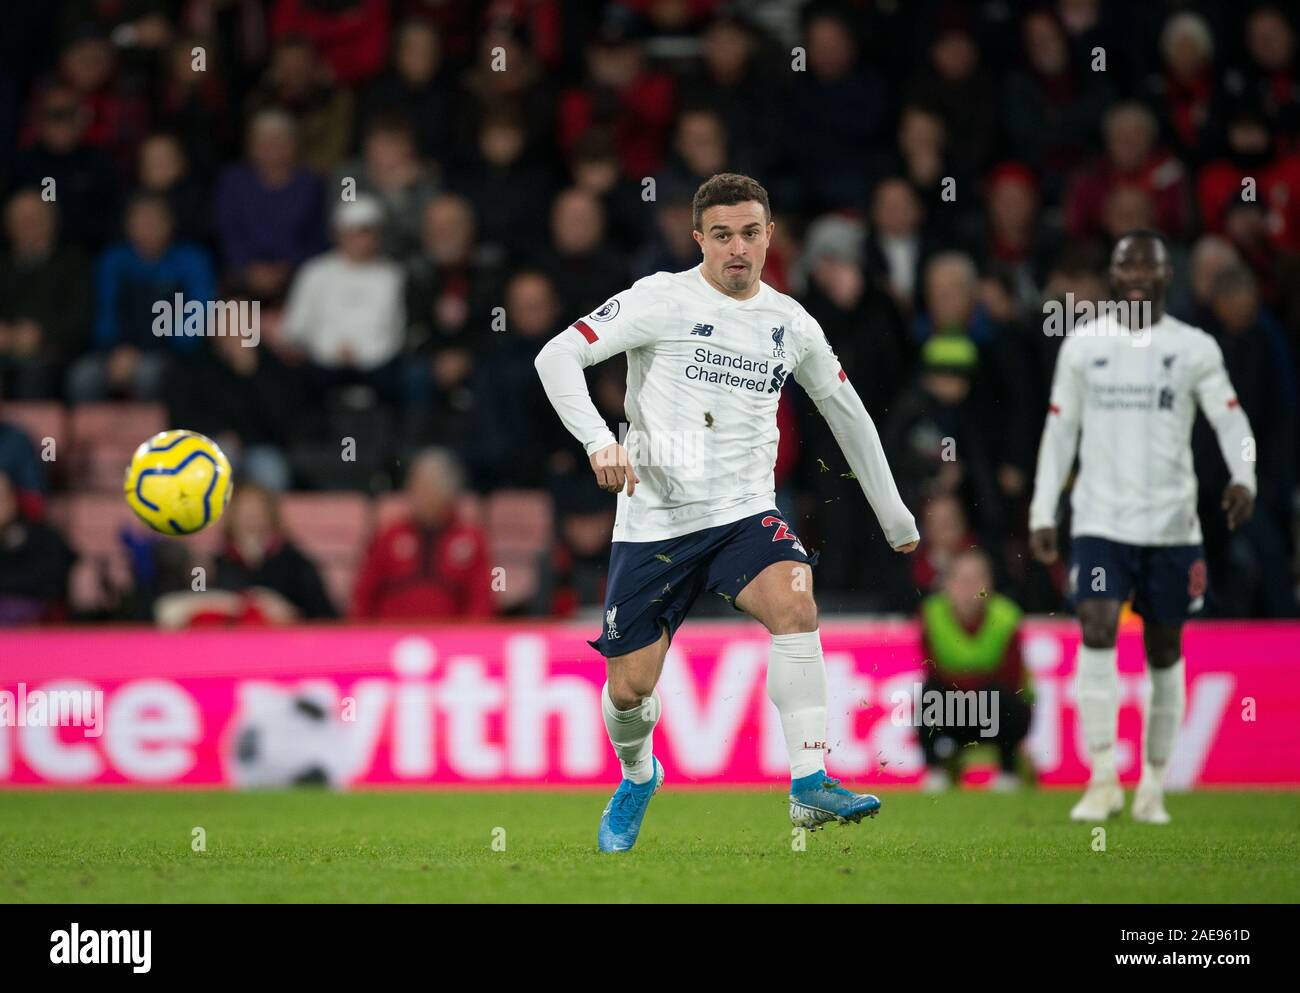 Bournemouth Uk 07th Dec 2019 Xherdan Shaqiri Of Liverpool During The Premier League Match Between Bournemouth And Liverpool At The Goldsands Stadium Bournemouth England On 7 December 2019 Photo By Andy Rowland